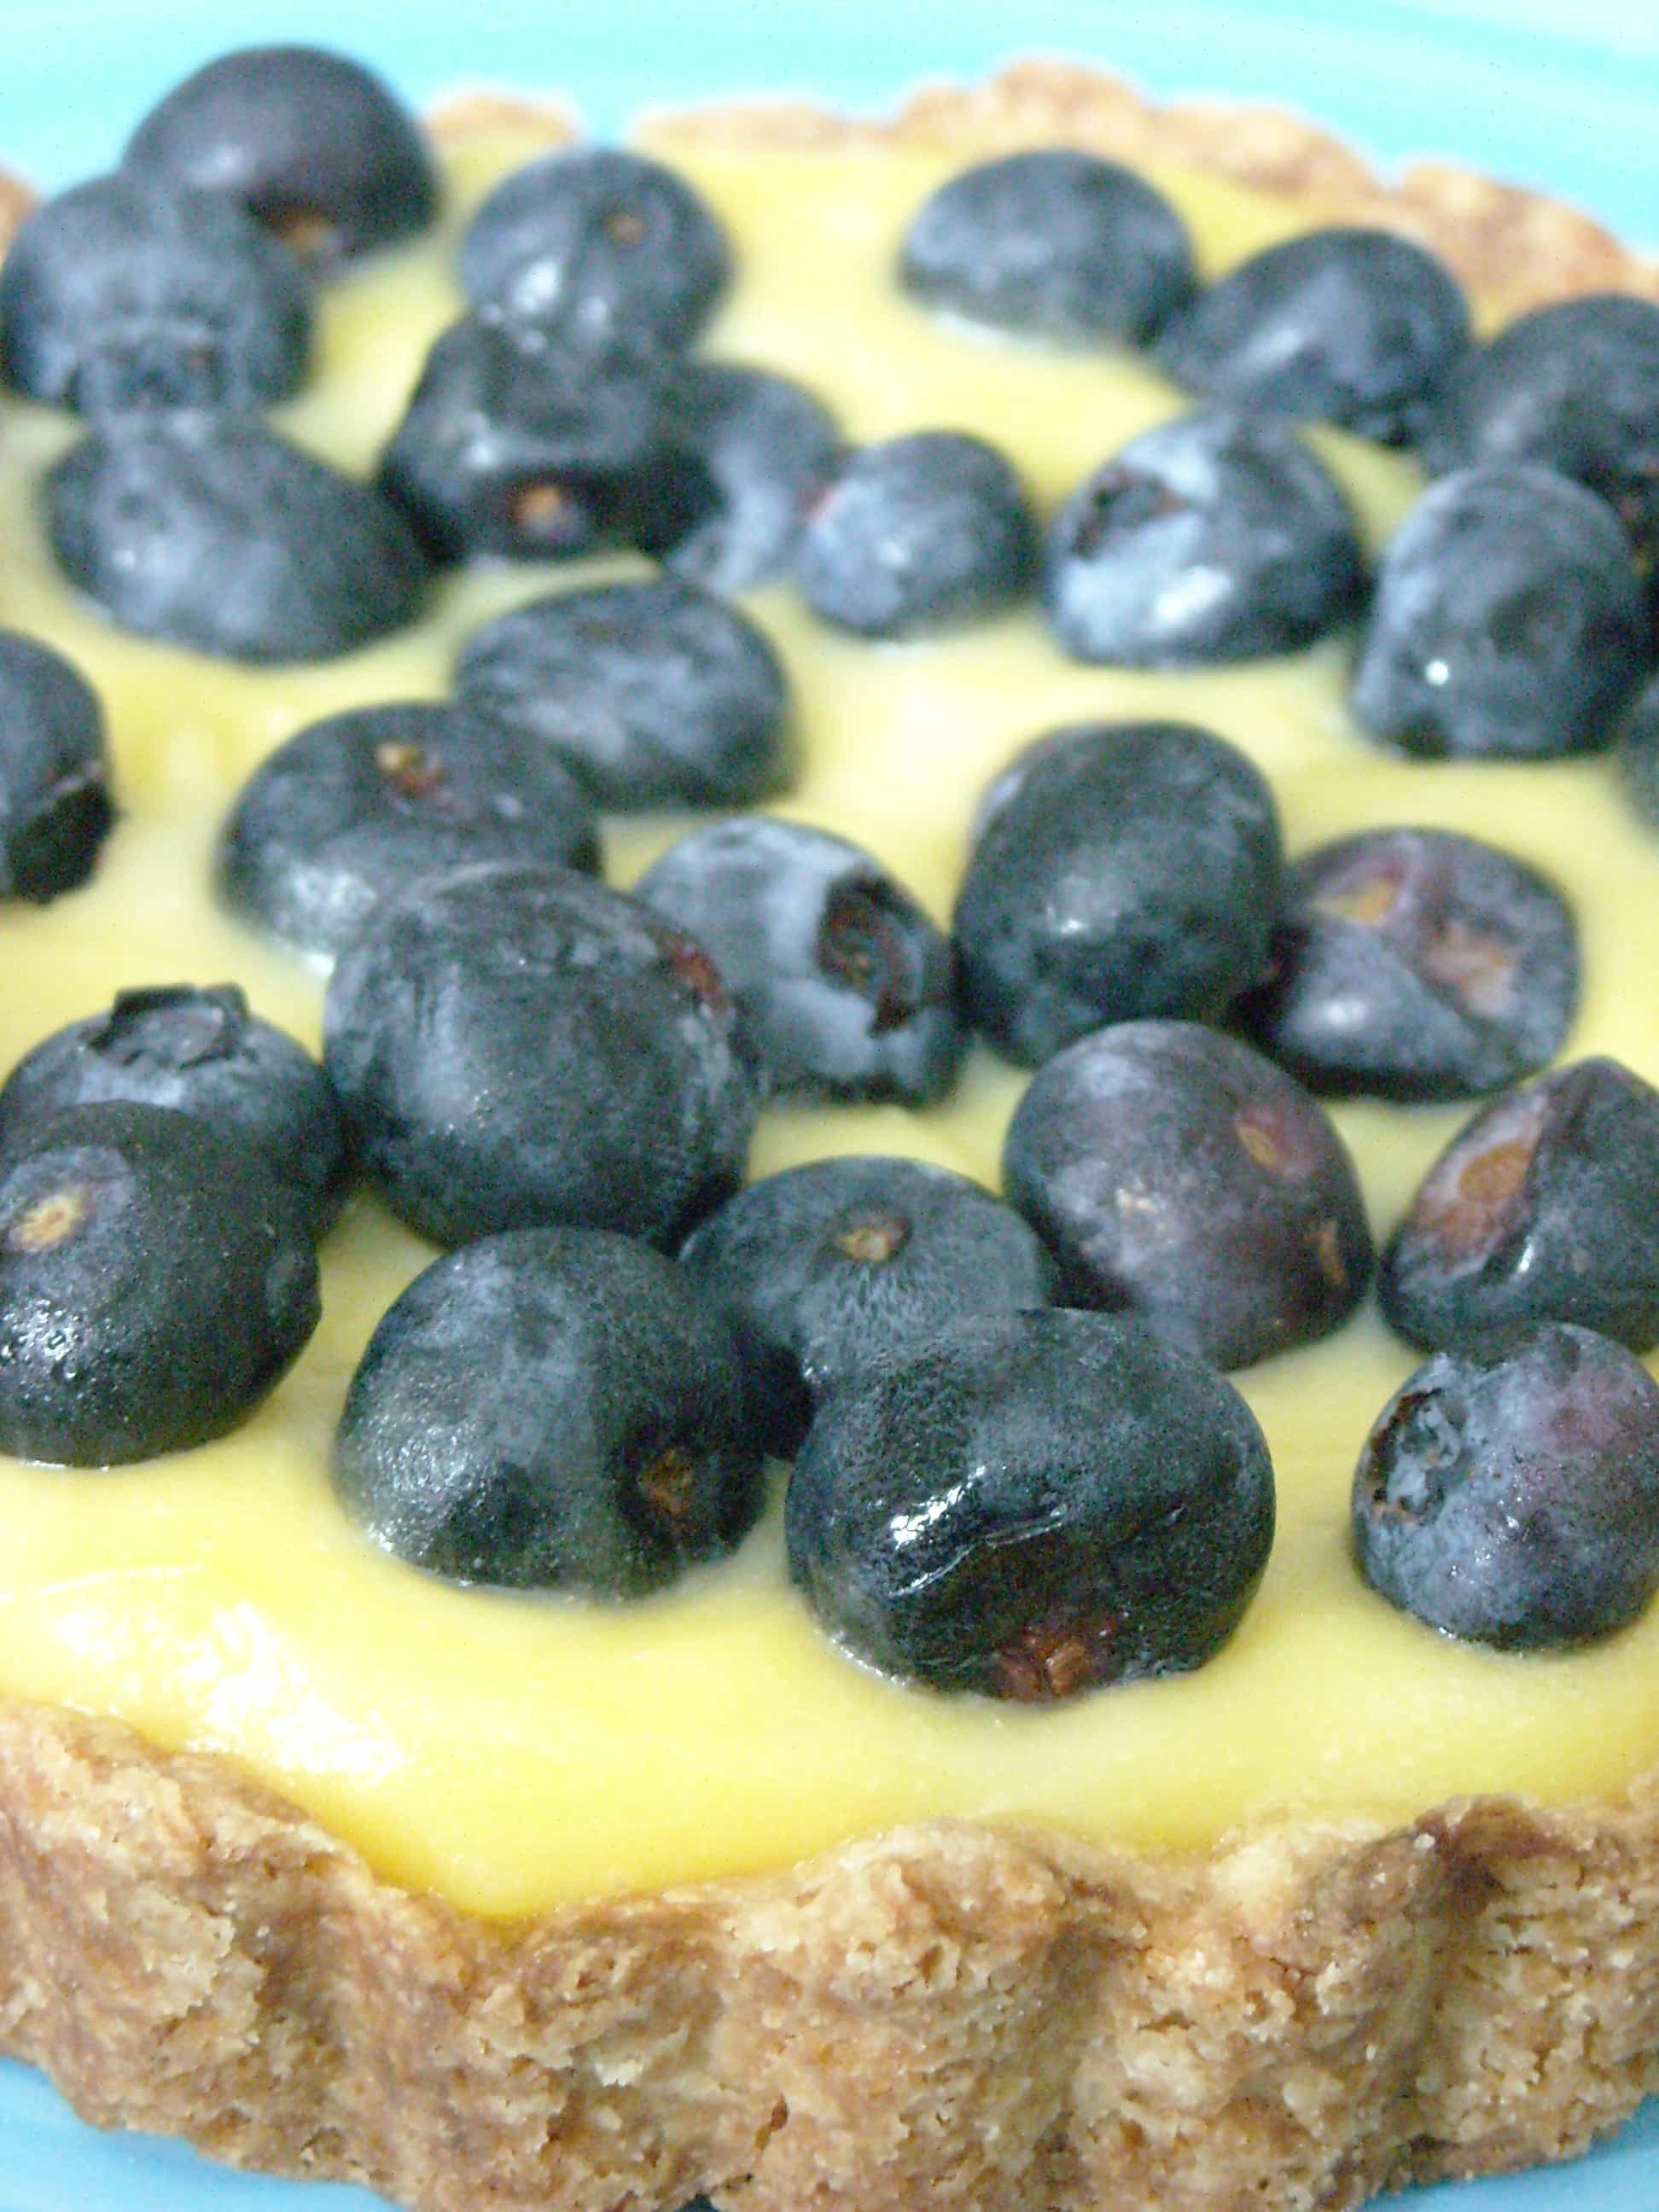 White Balsamic Custard Tart with Blueberries by Nutmeg Nanny